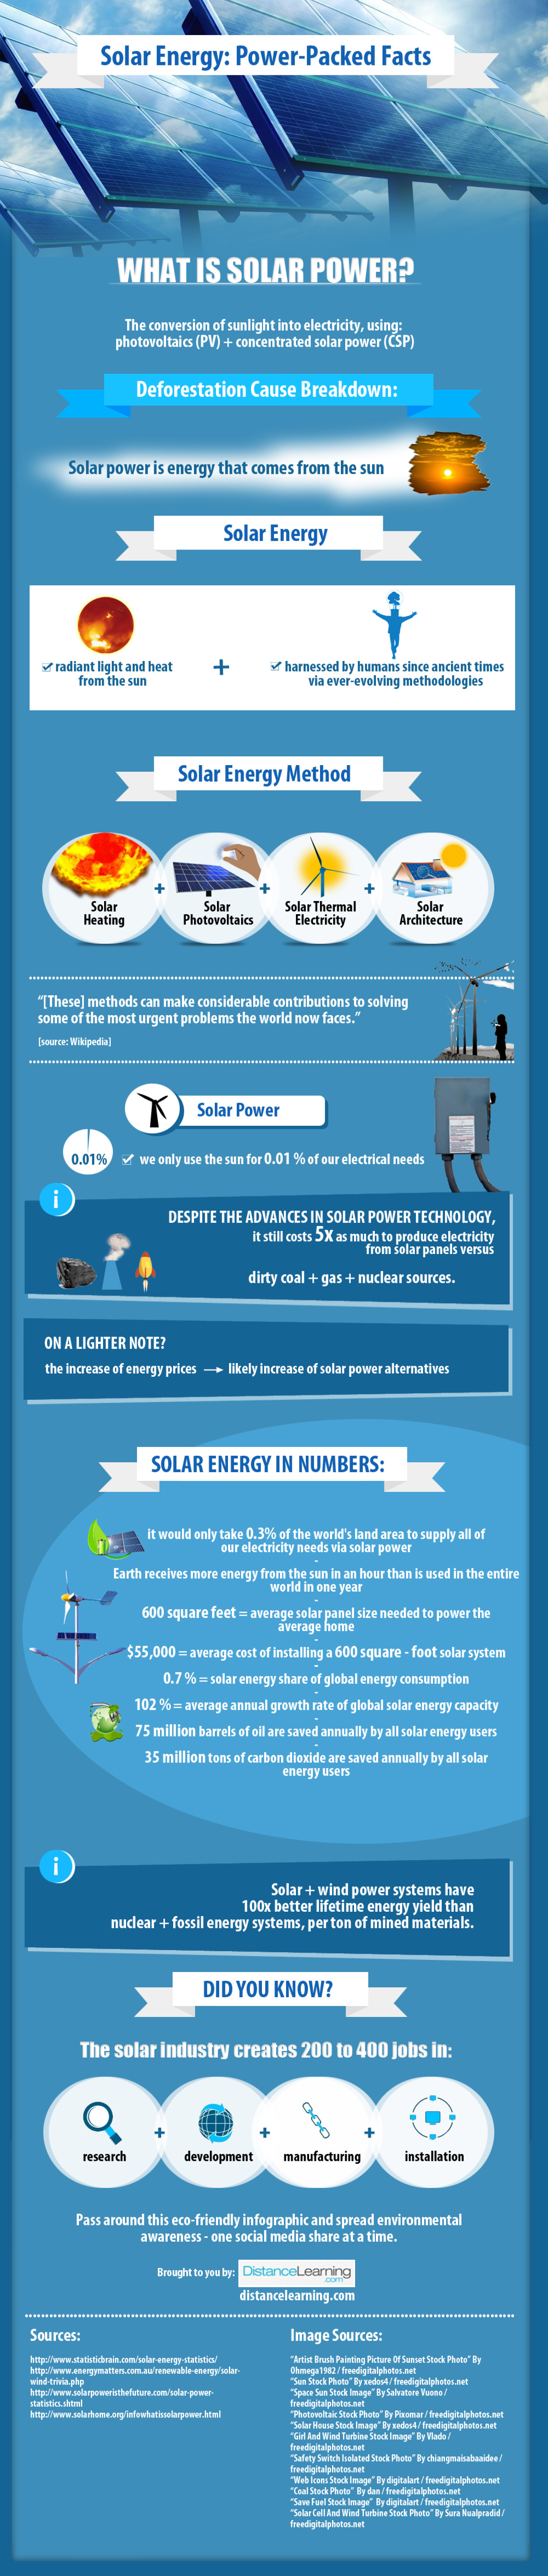 Solar Energy: Power-Packed Facts Infographic